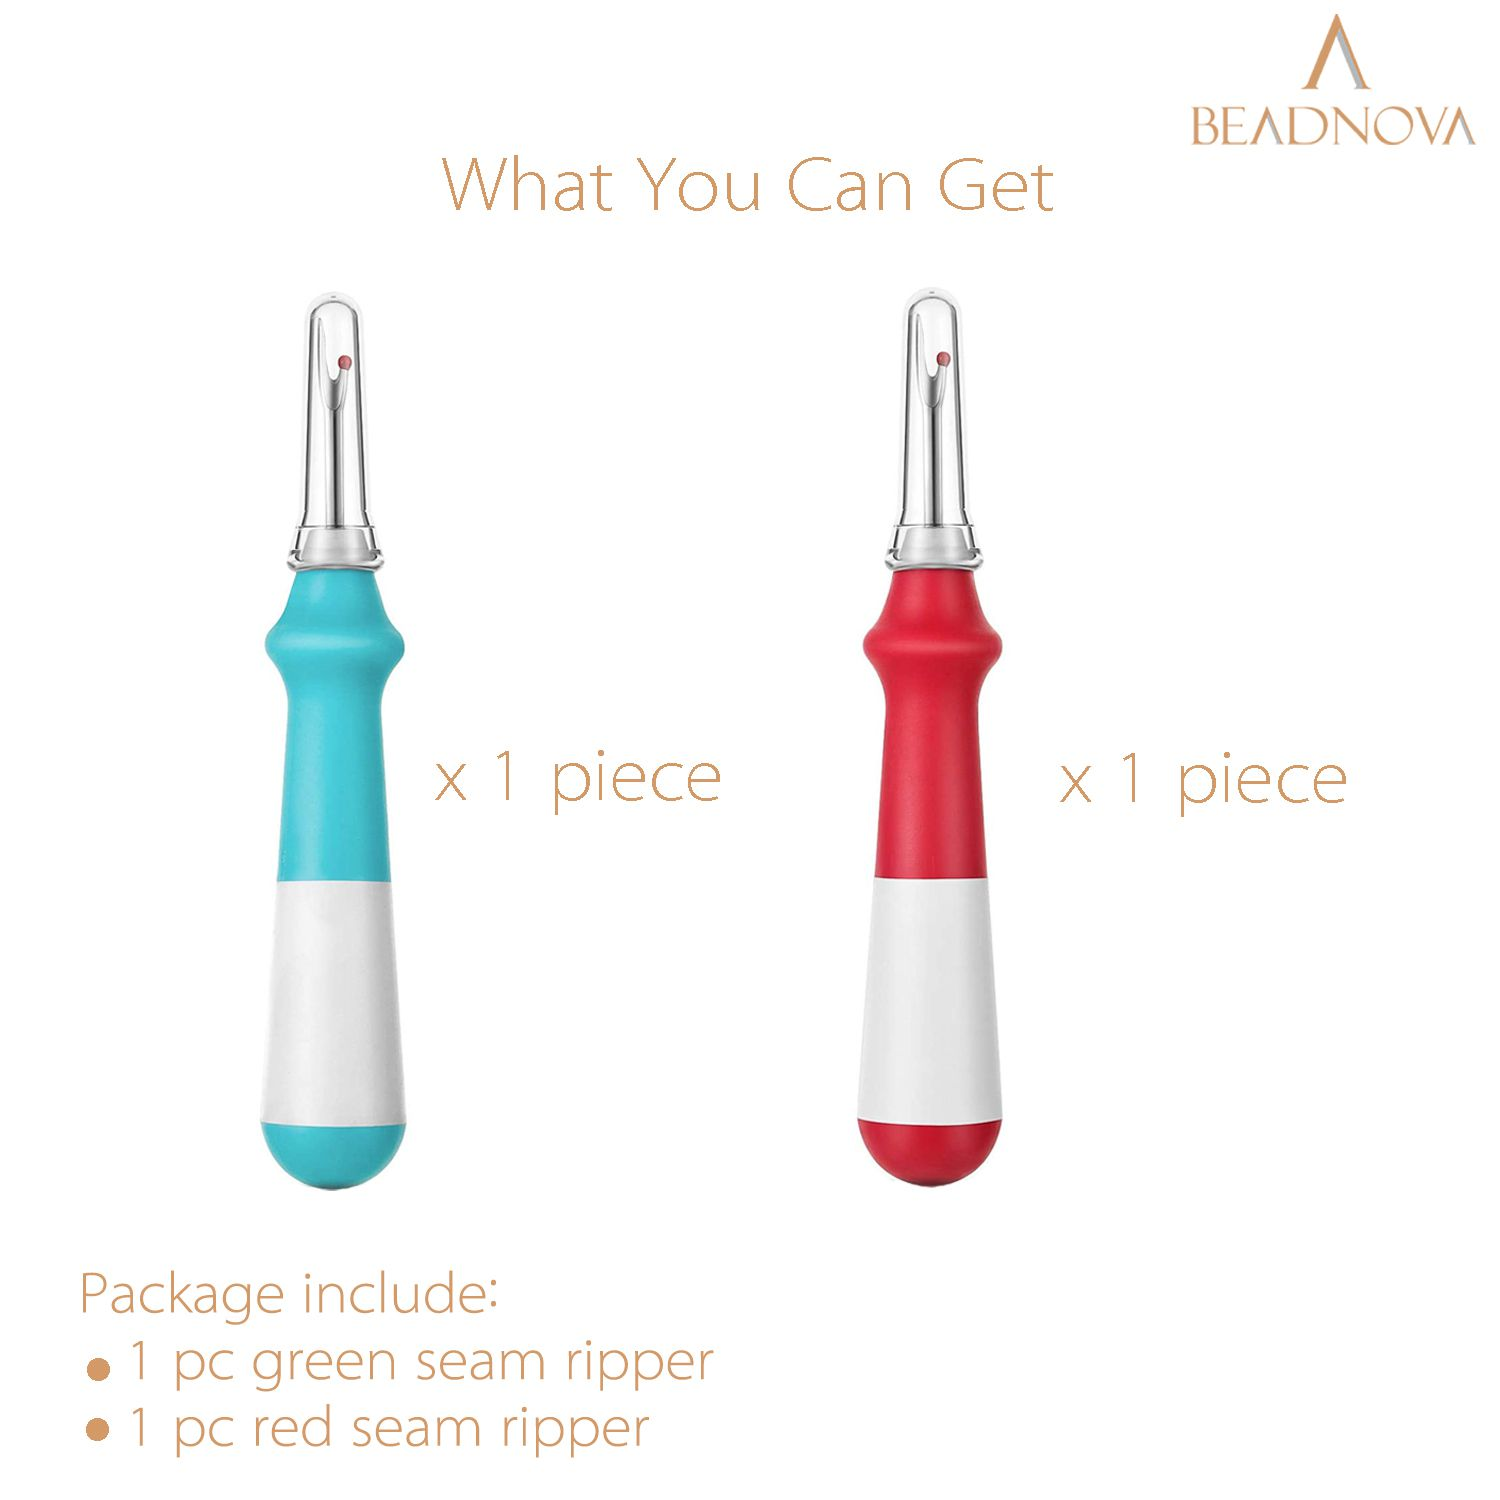 BEADNOVA Seam Ripper 2pcs Thread Cutter Stitch Remover Large Thread Remover Stitch Eraser Tag Remover for Clothes Crafting Embroidery